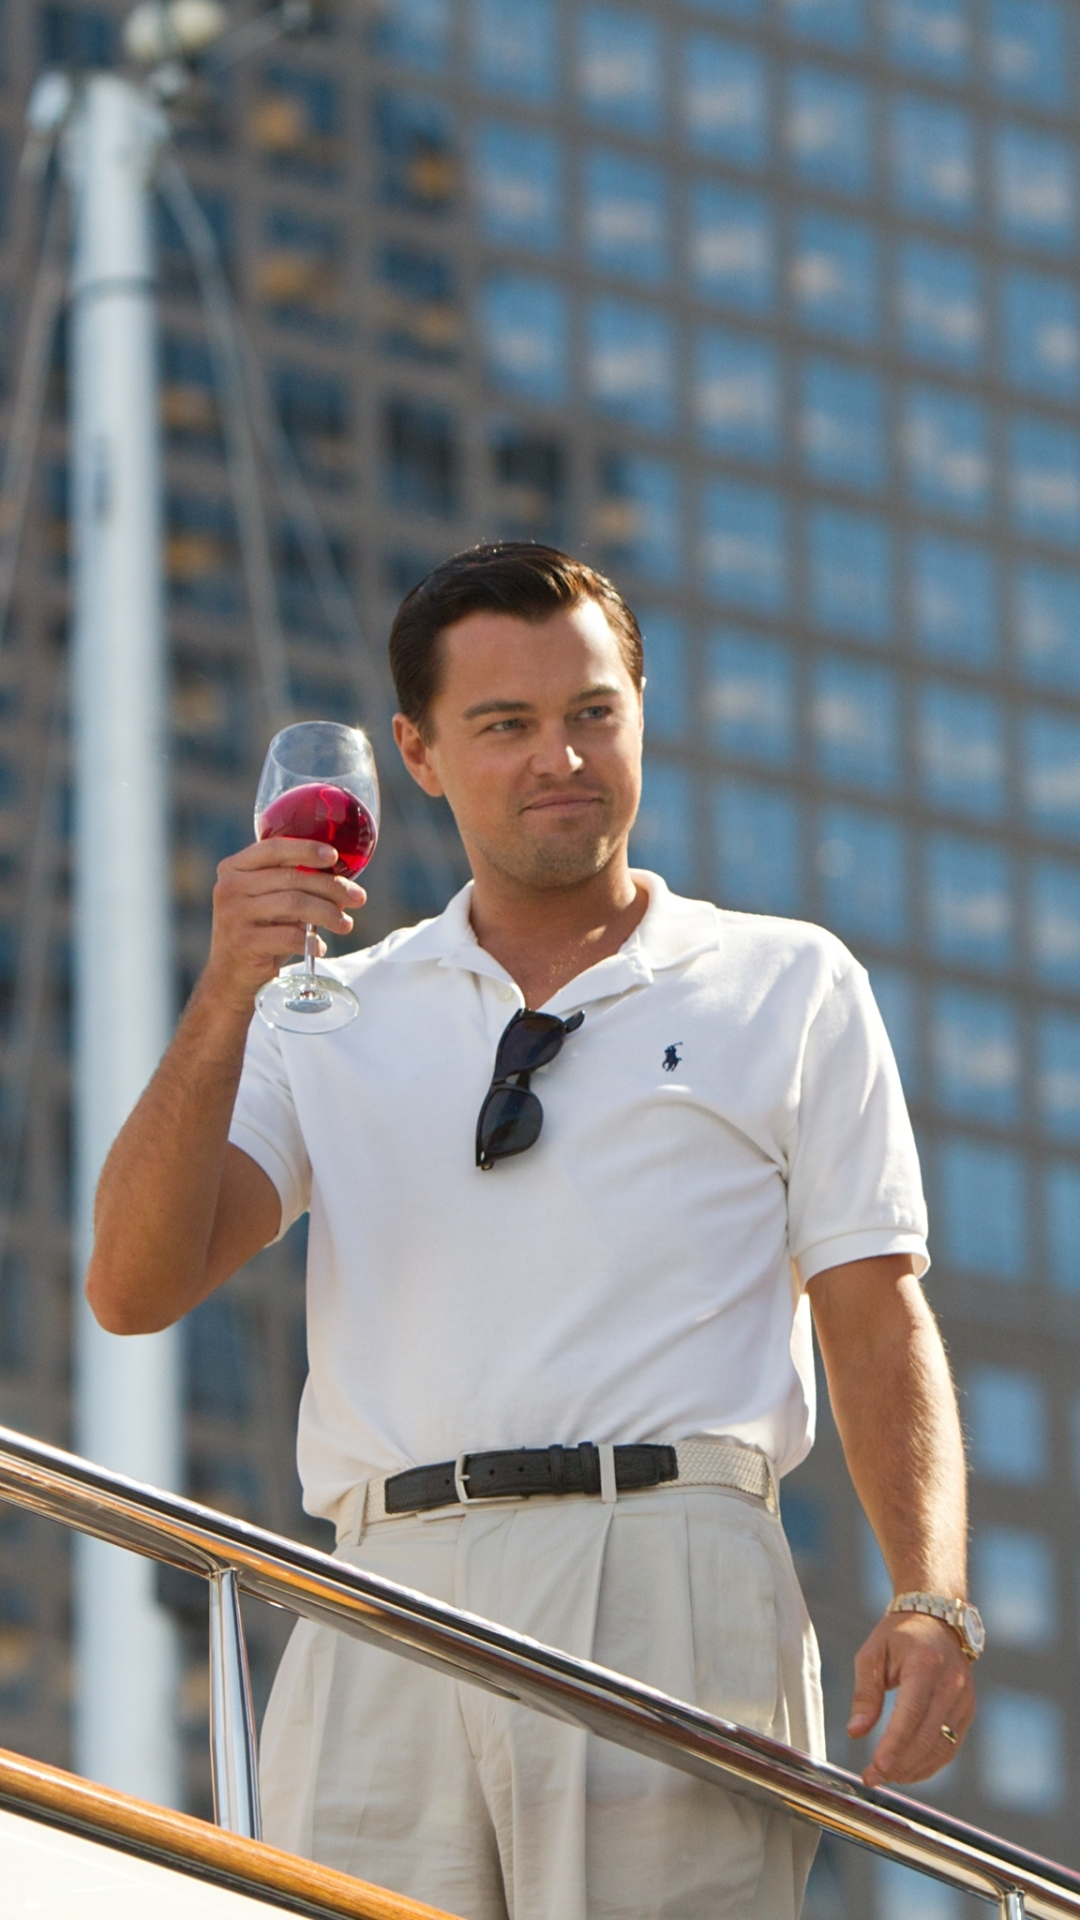 Wolf Of Wall Street Wallpaper Iphone 5 | Galleryimage.co